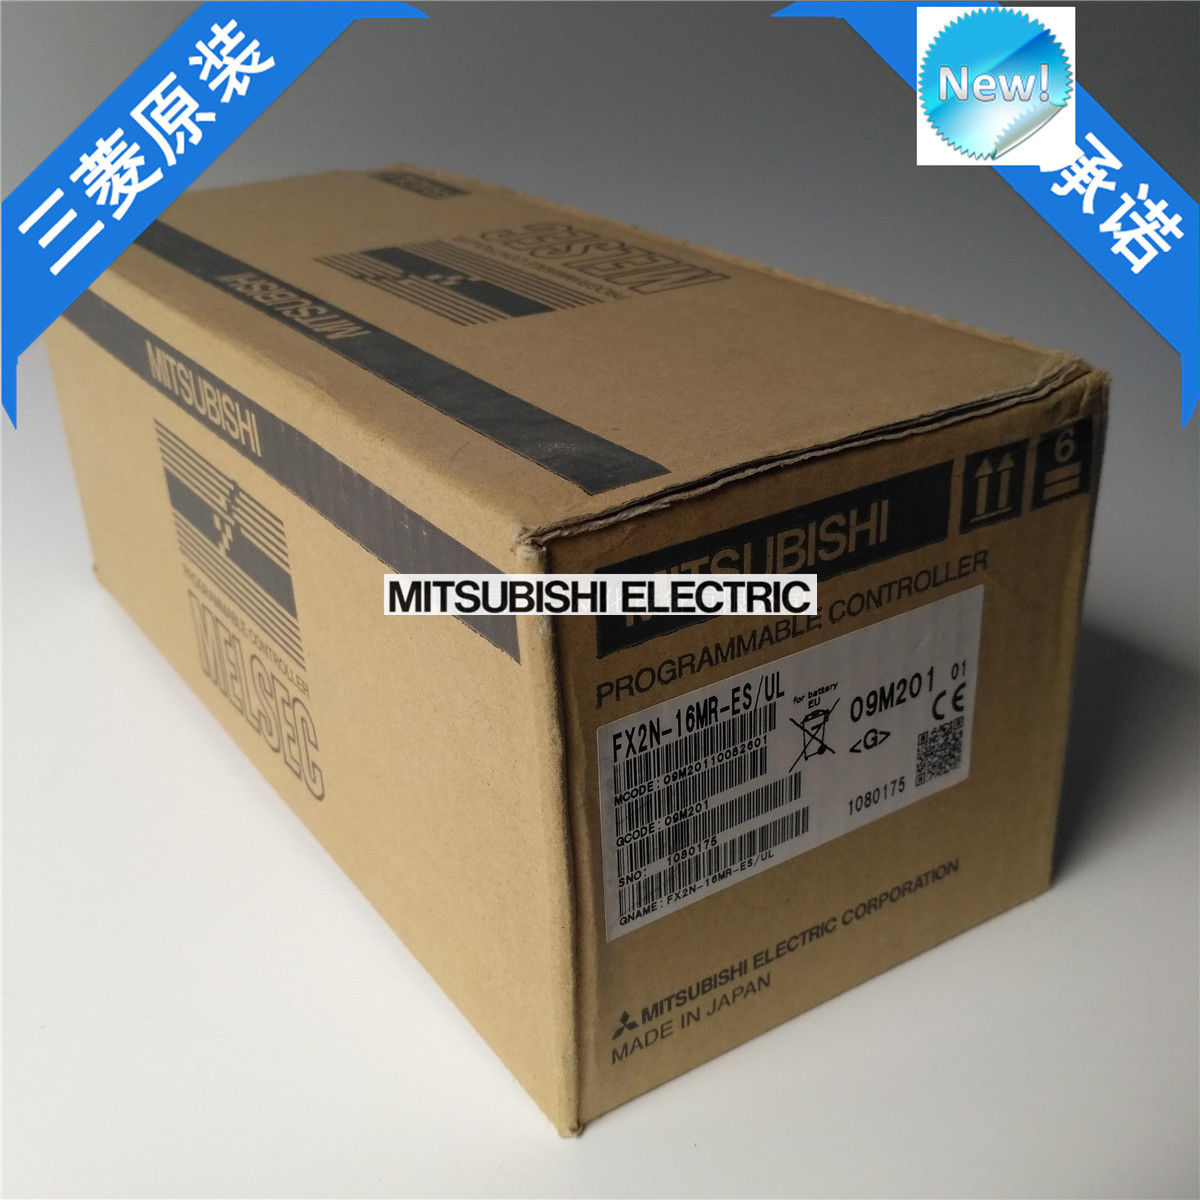 Mitsubishi PLC FX2N-16MR-ES/UL New In Box FX2N16MRESUL